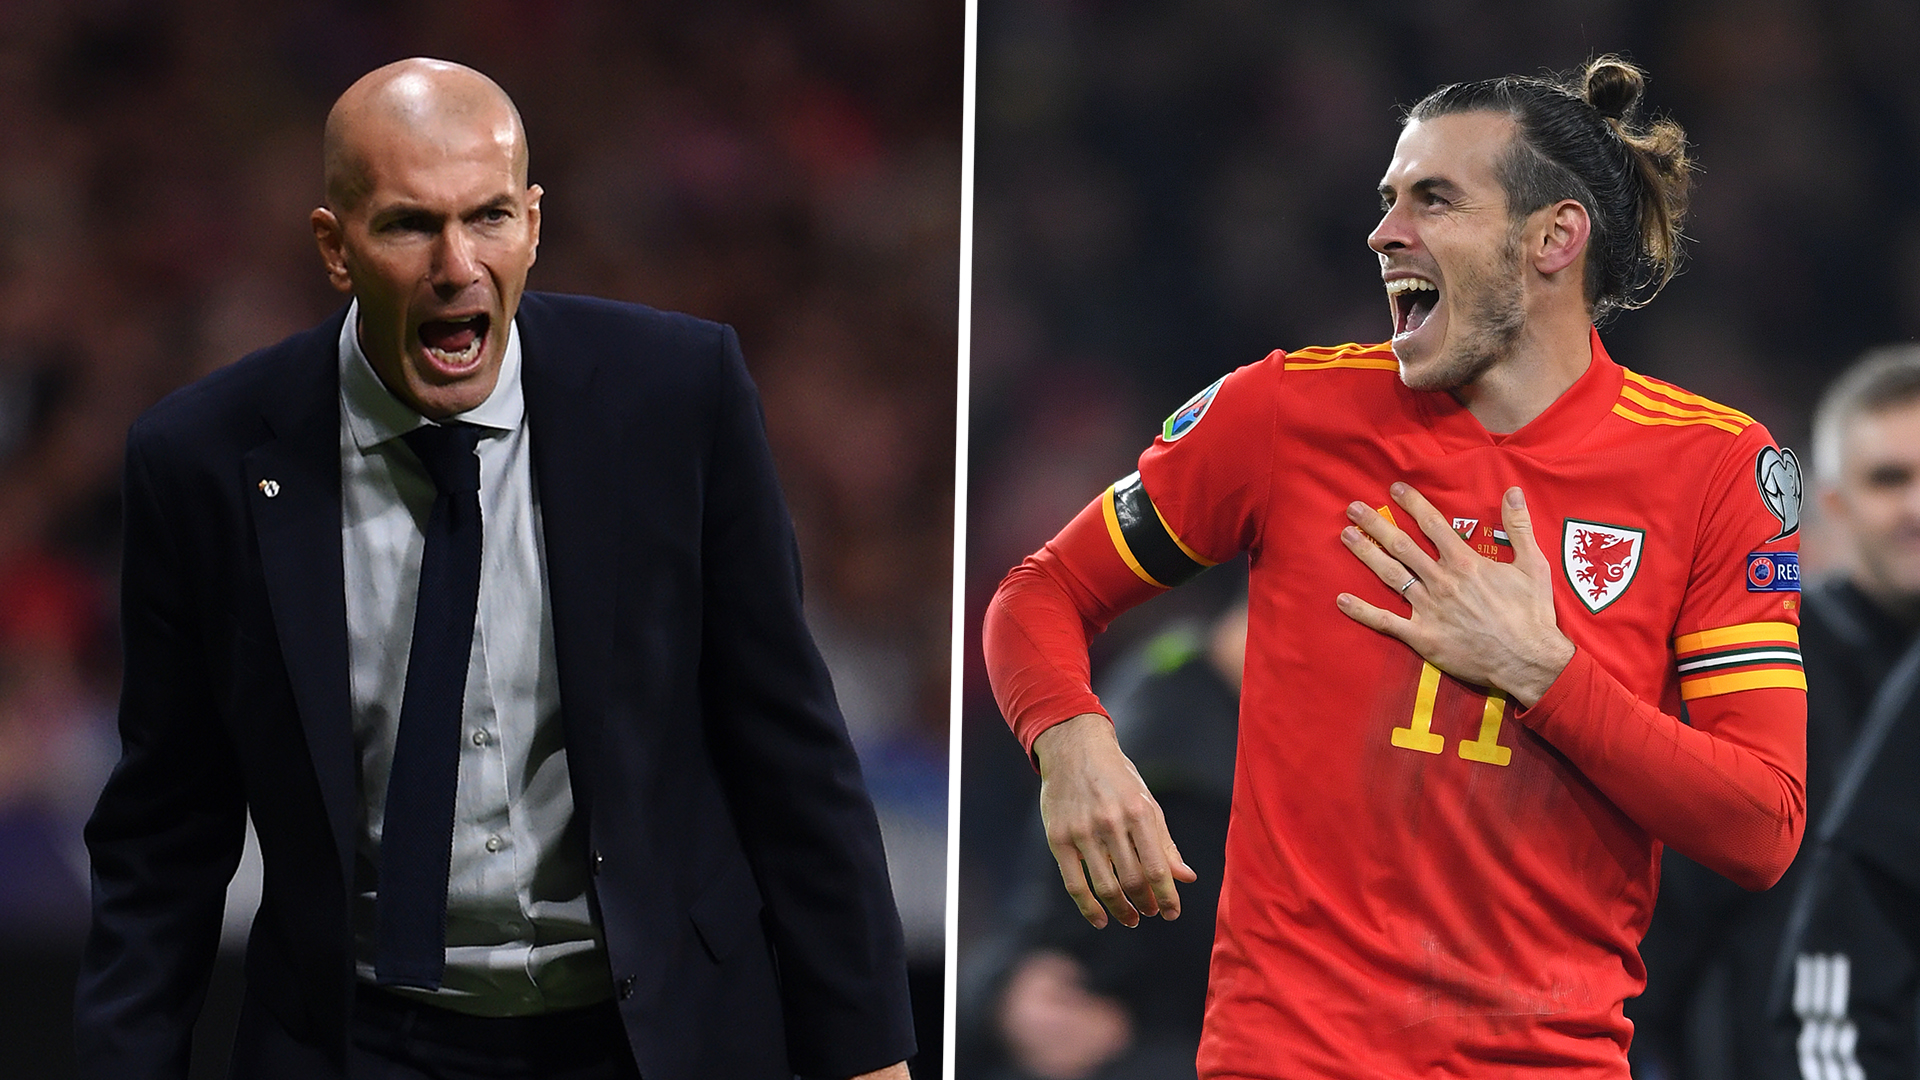 'When Bale scored in the Champions League final he was happy' - Zidane plays down Wales banner criticism